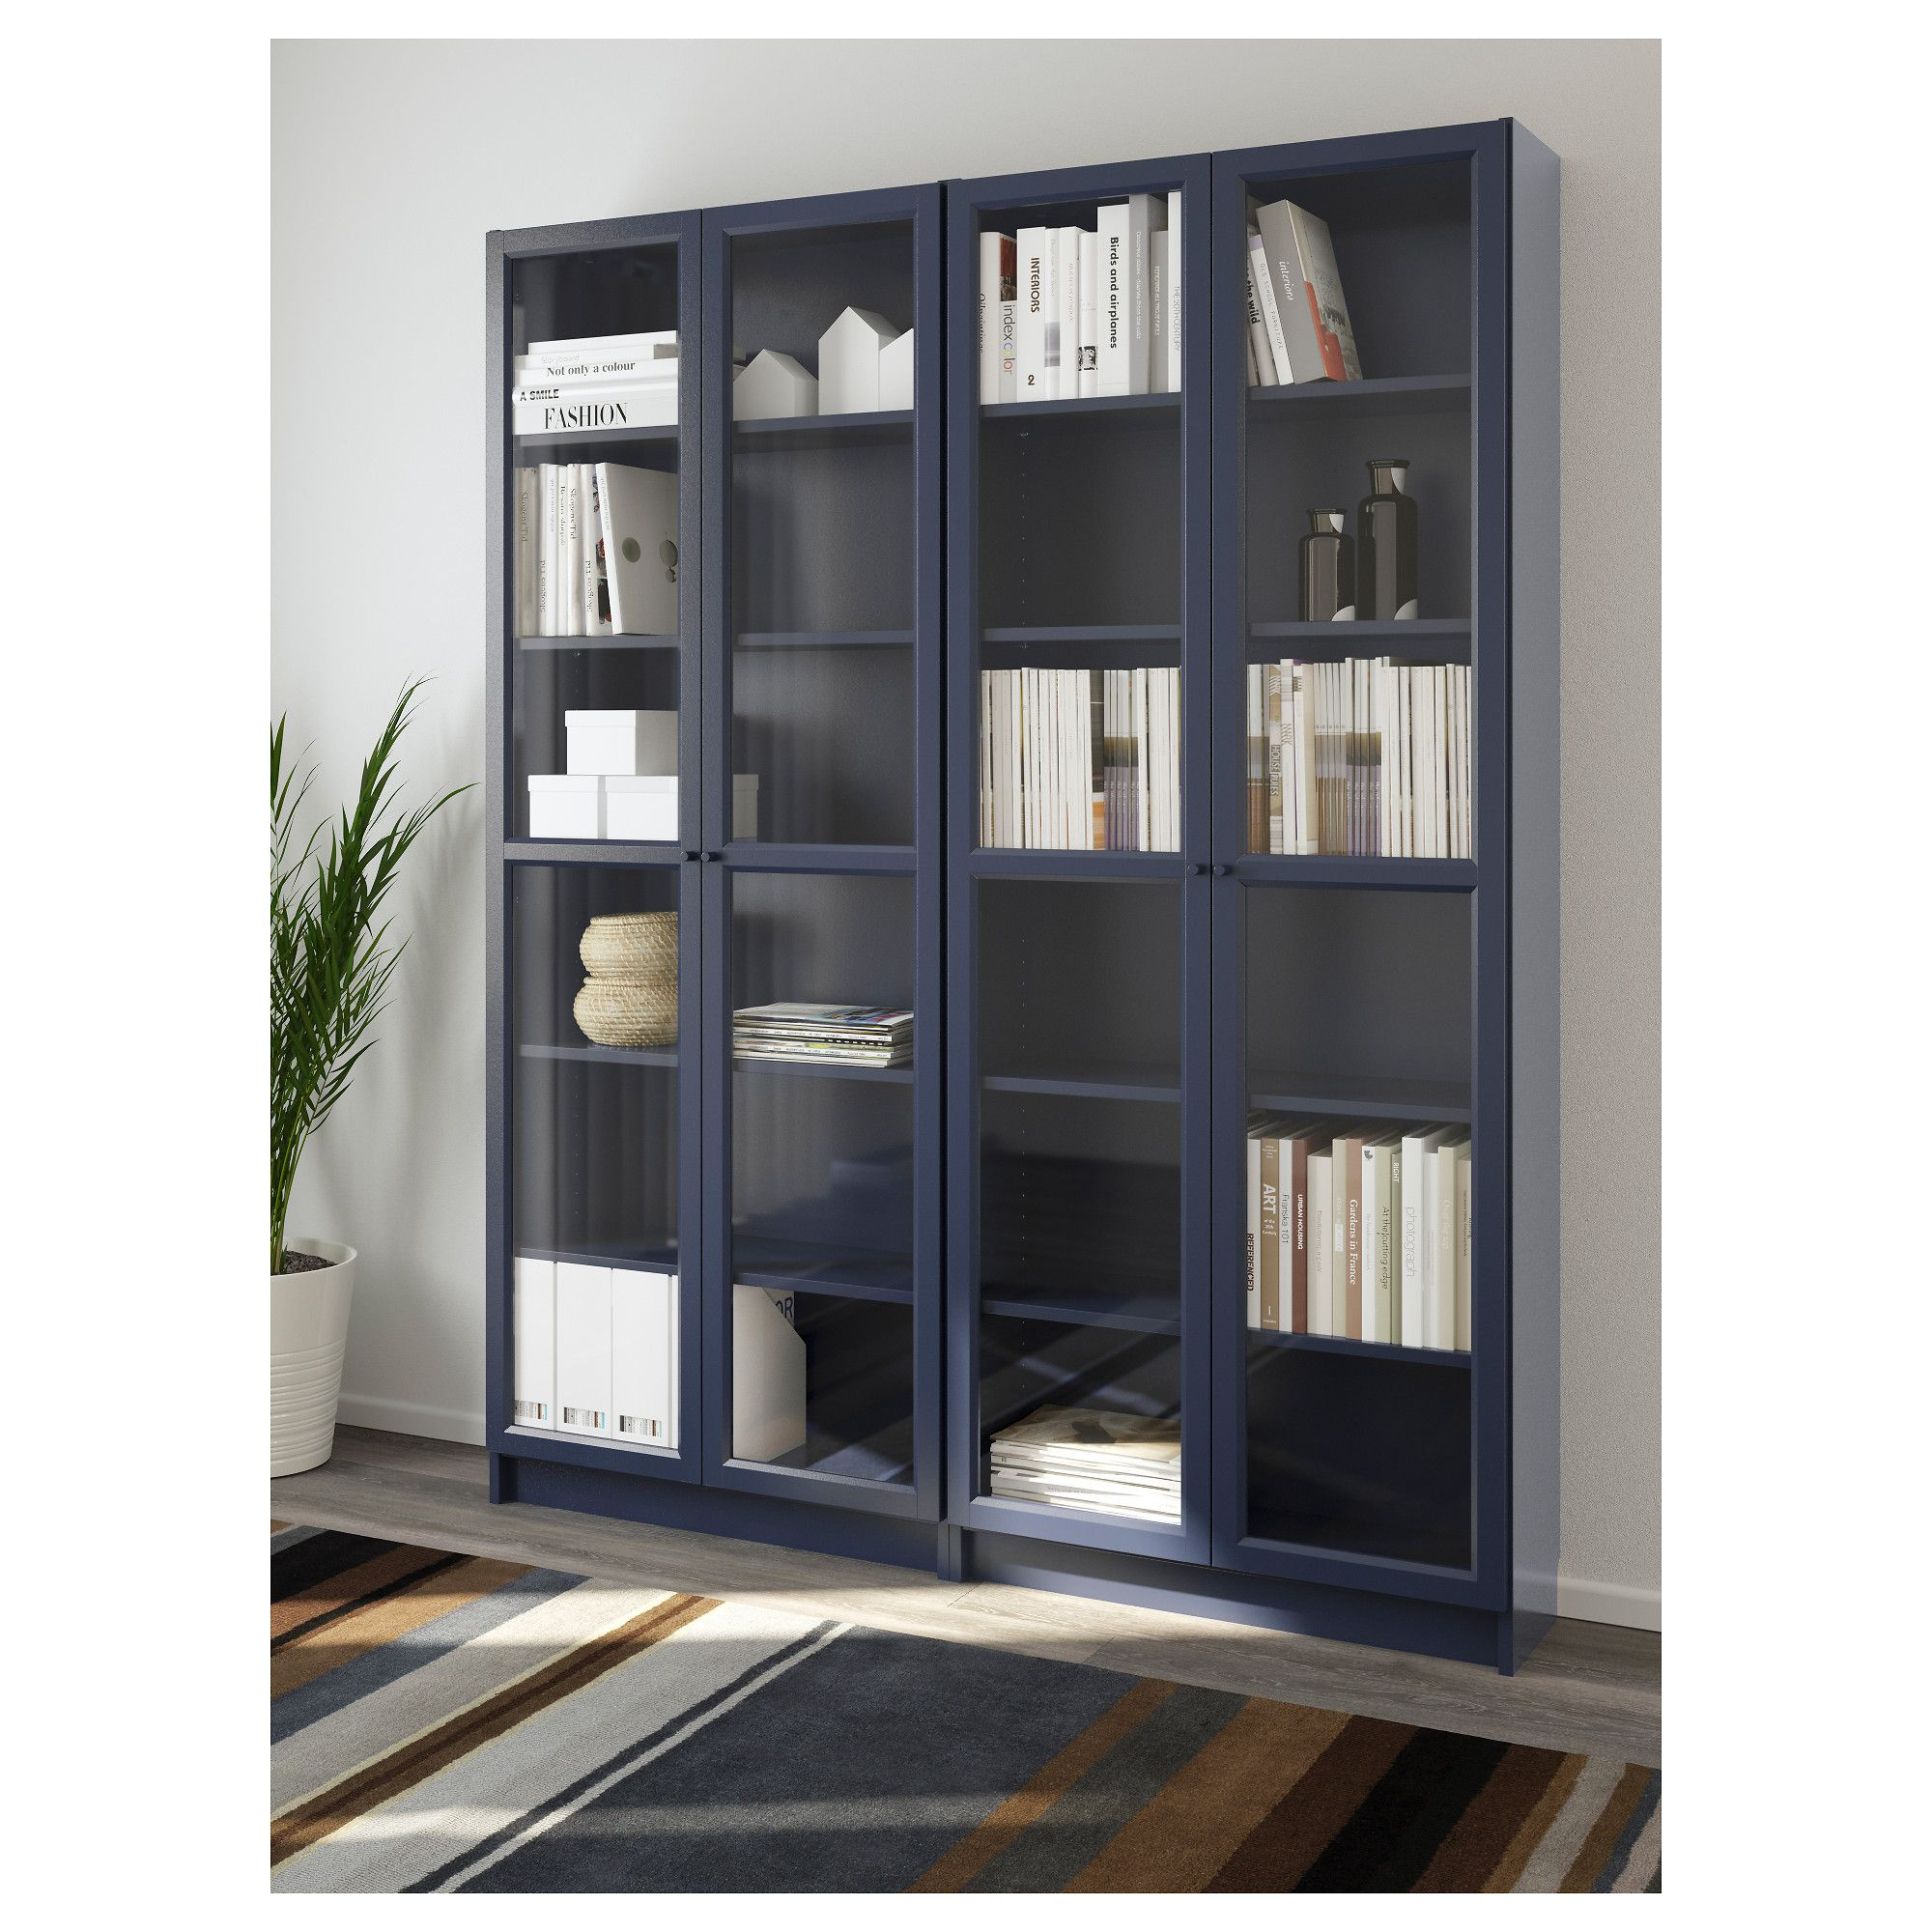 furniture books racks some drawers keep lovely the wooden idea connected wall rug on blue to floor of your bookshelf bookshelves with and fur white by